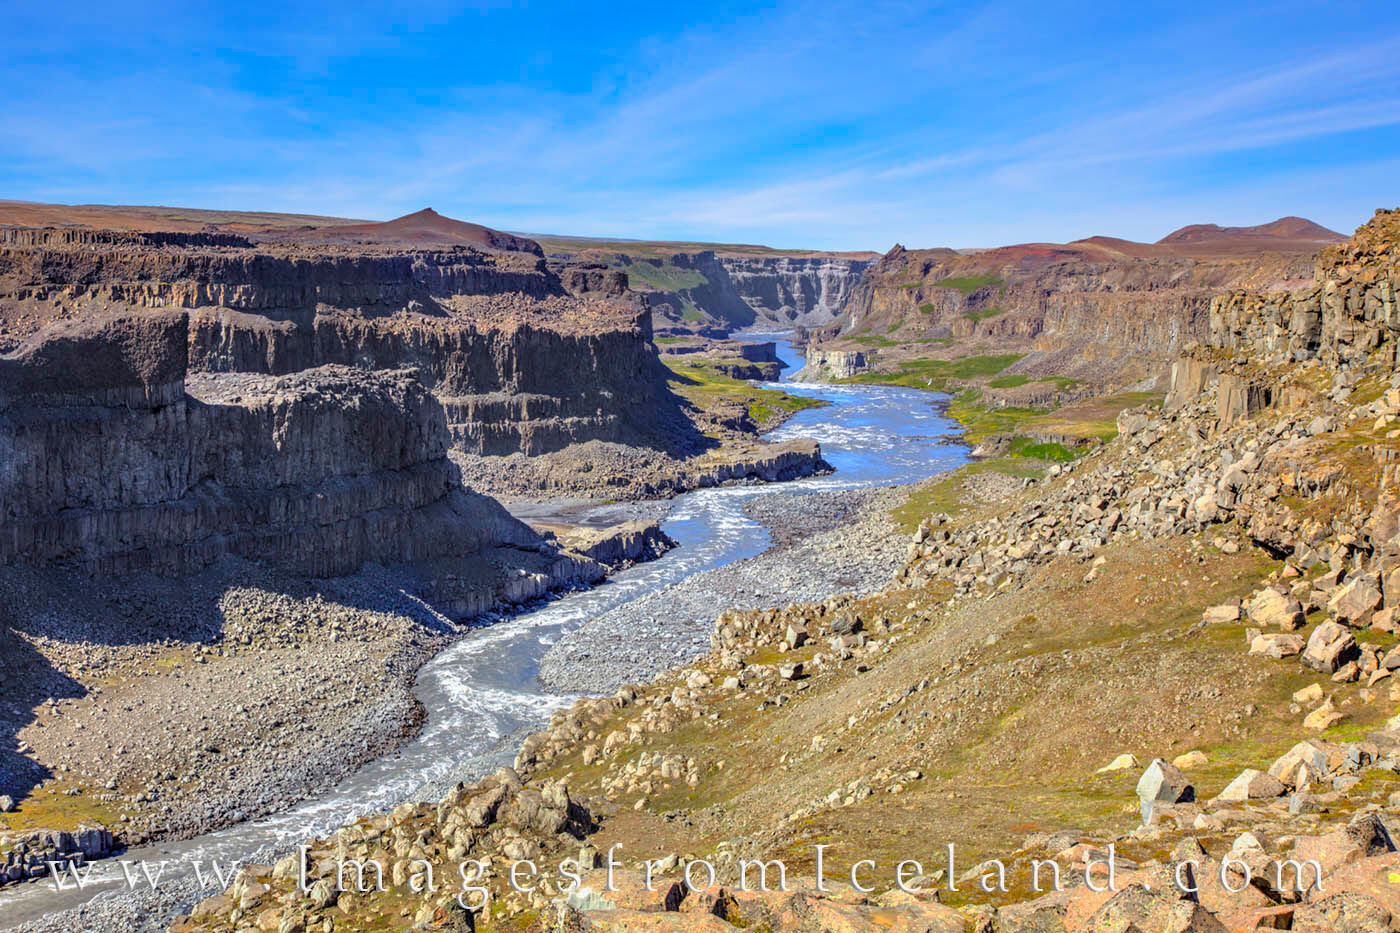 After Dettifoss plummets 144', the water flows north through a small canyon in Vatnajökull National Park on its way to Öxarfj...